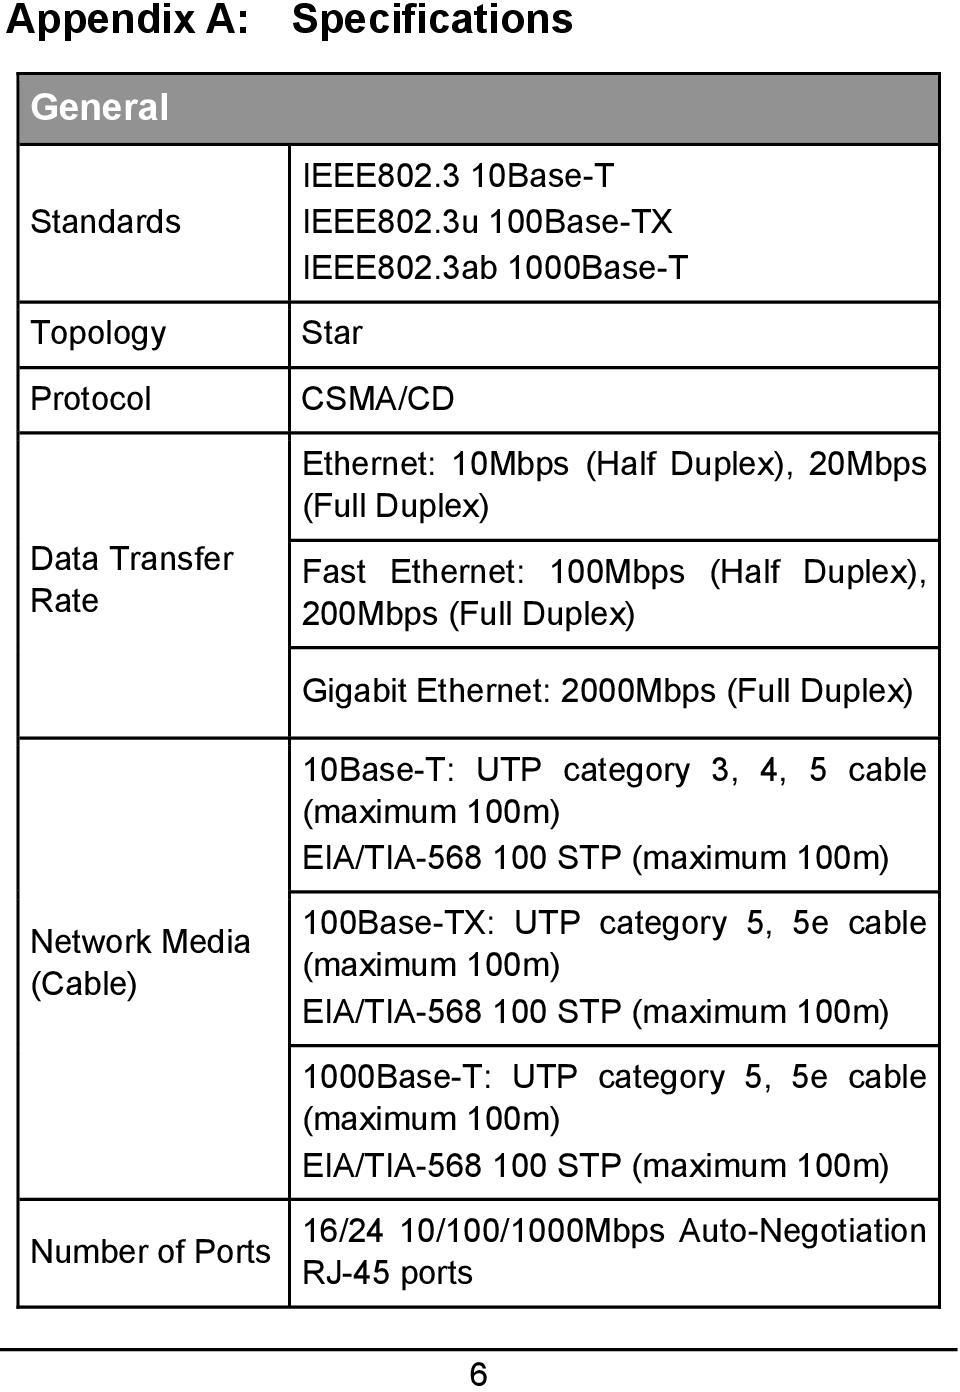 2000Mbps (Full Duplex) 10Base-T: UTP category 3, 4, 5 cable (maximum 100m) EIA/TIA-568 100 STP (maximum 100m) Network Media (Cable) Number of Ports 100Base-TX: UTP